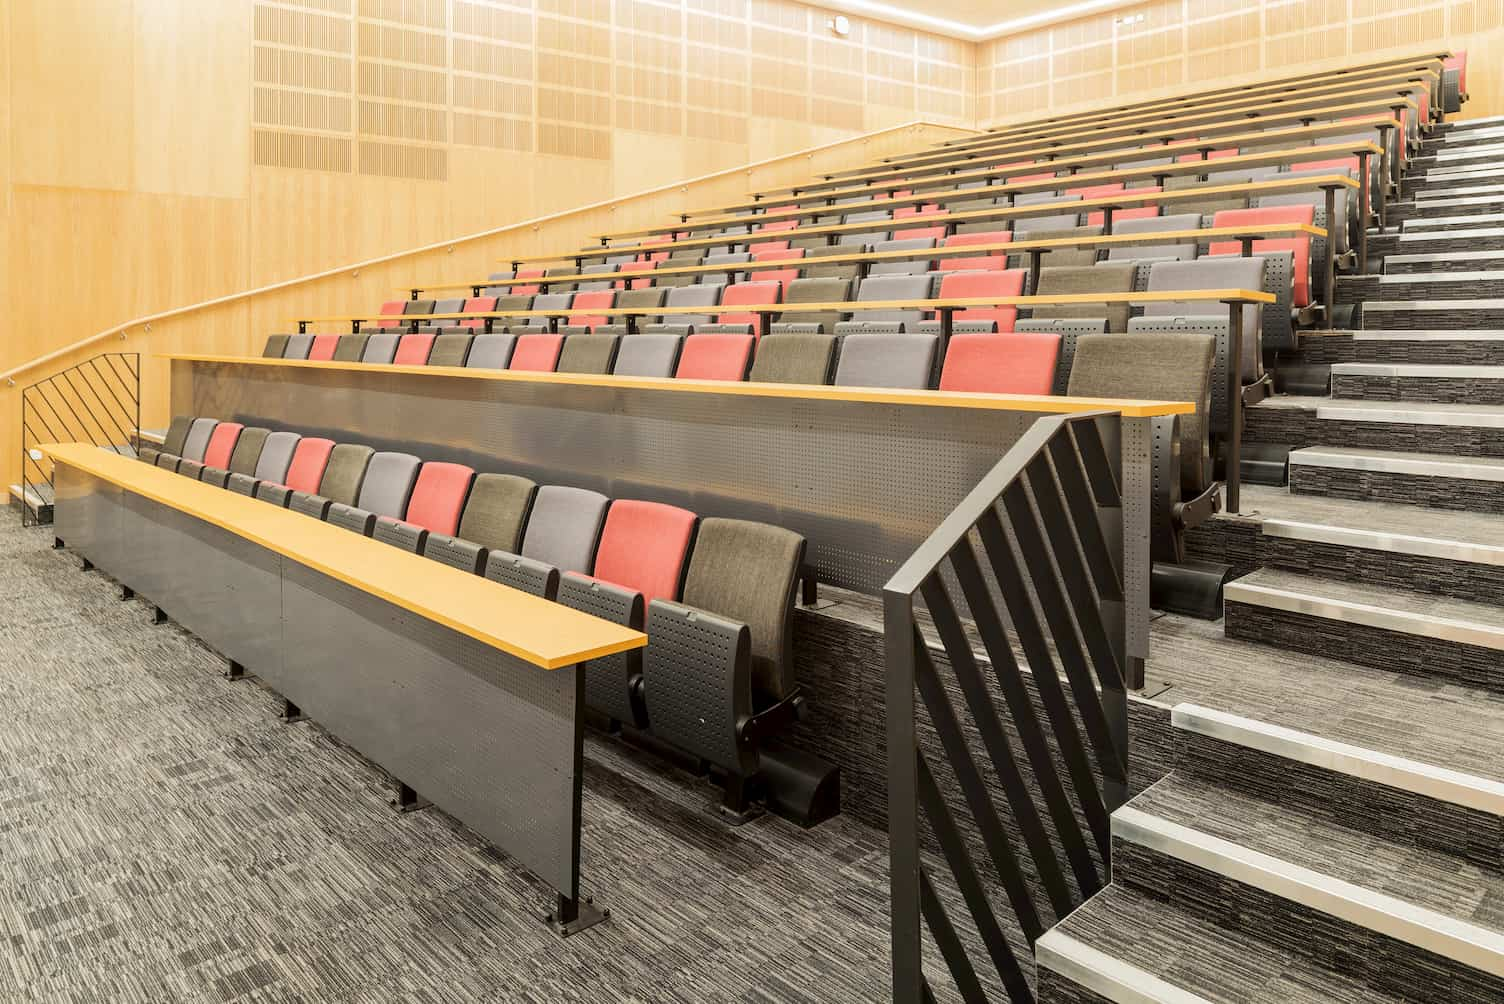 The General Traffic Lecture Theatre